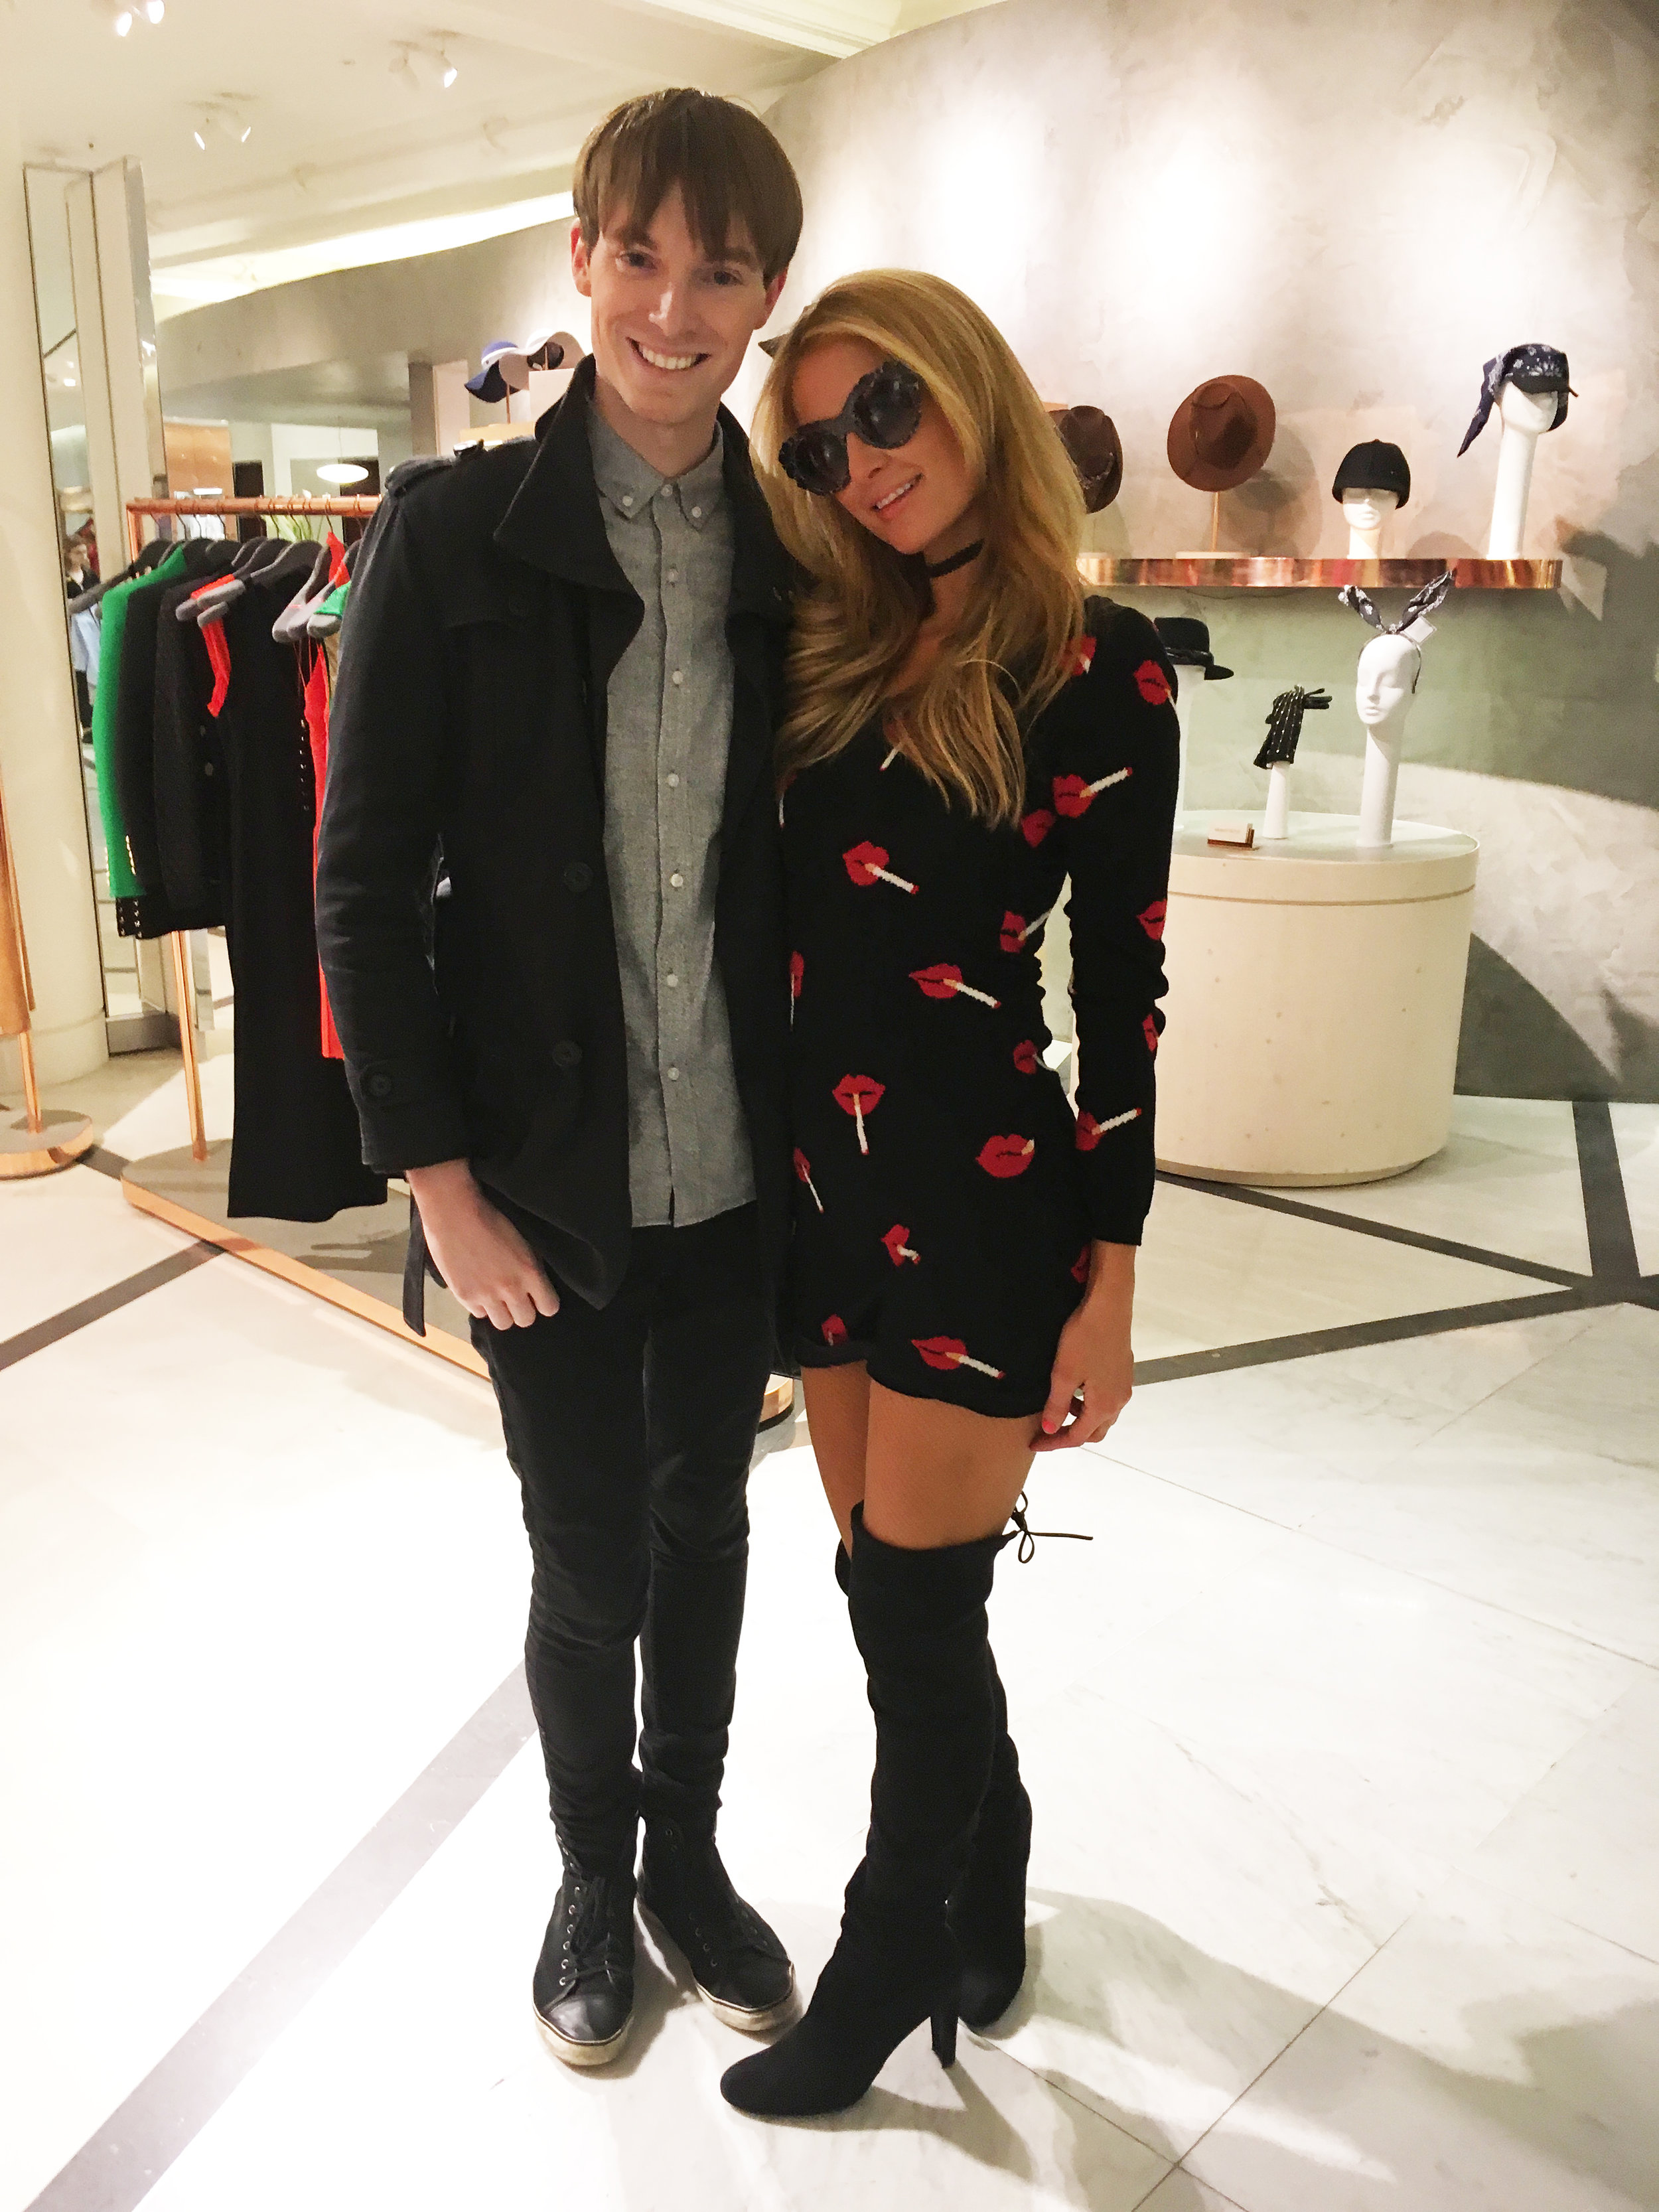 Richard Brownlie-Marshall & Paris Hilton